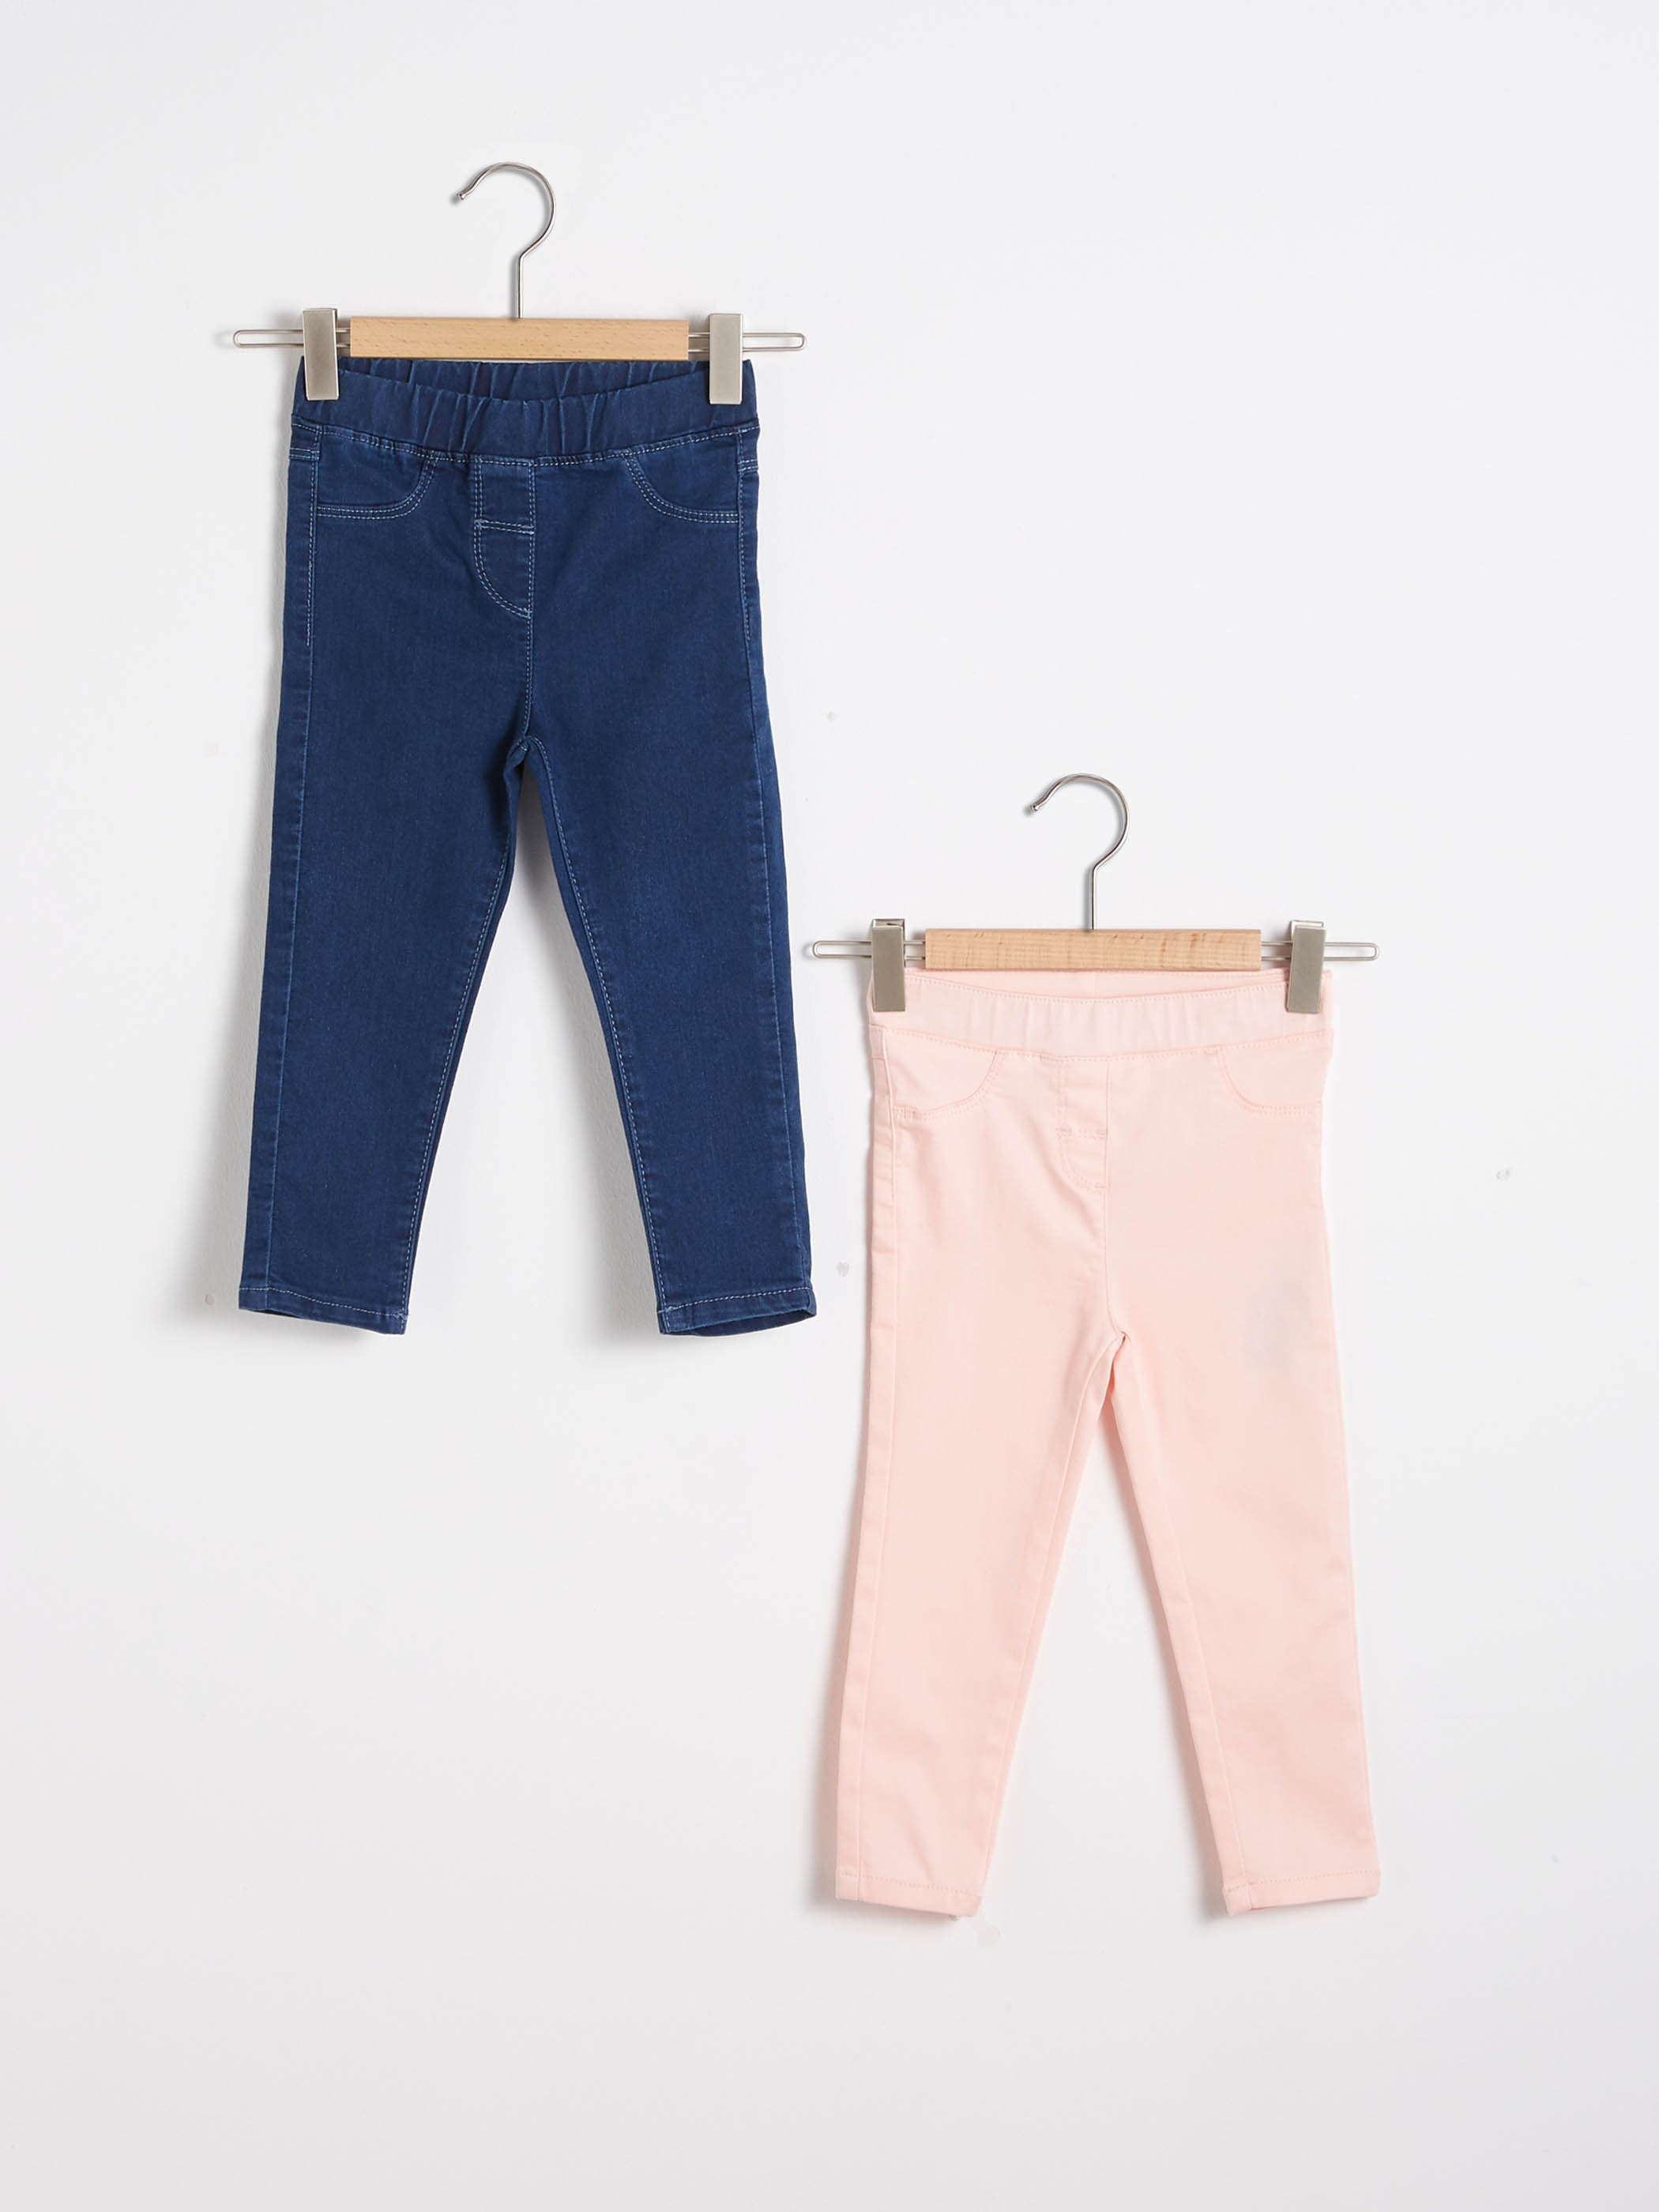 PINK - 2-pack Baby Girl's Trousers - S1DD98Z1